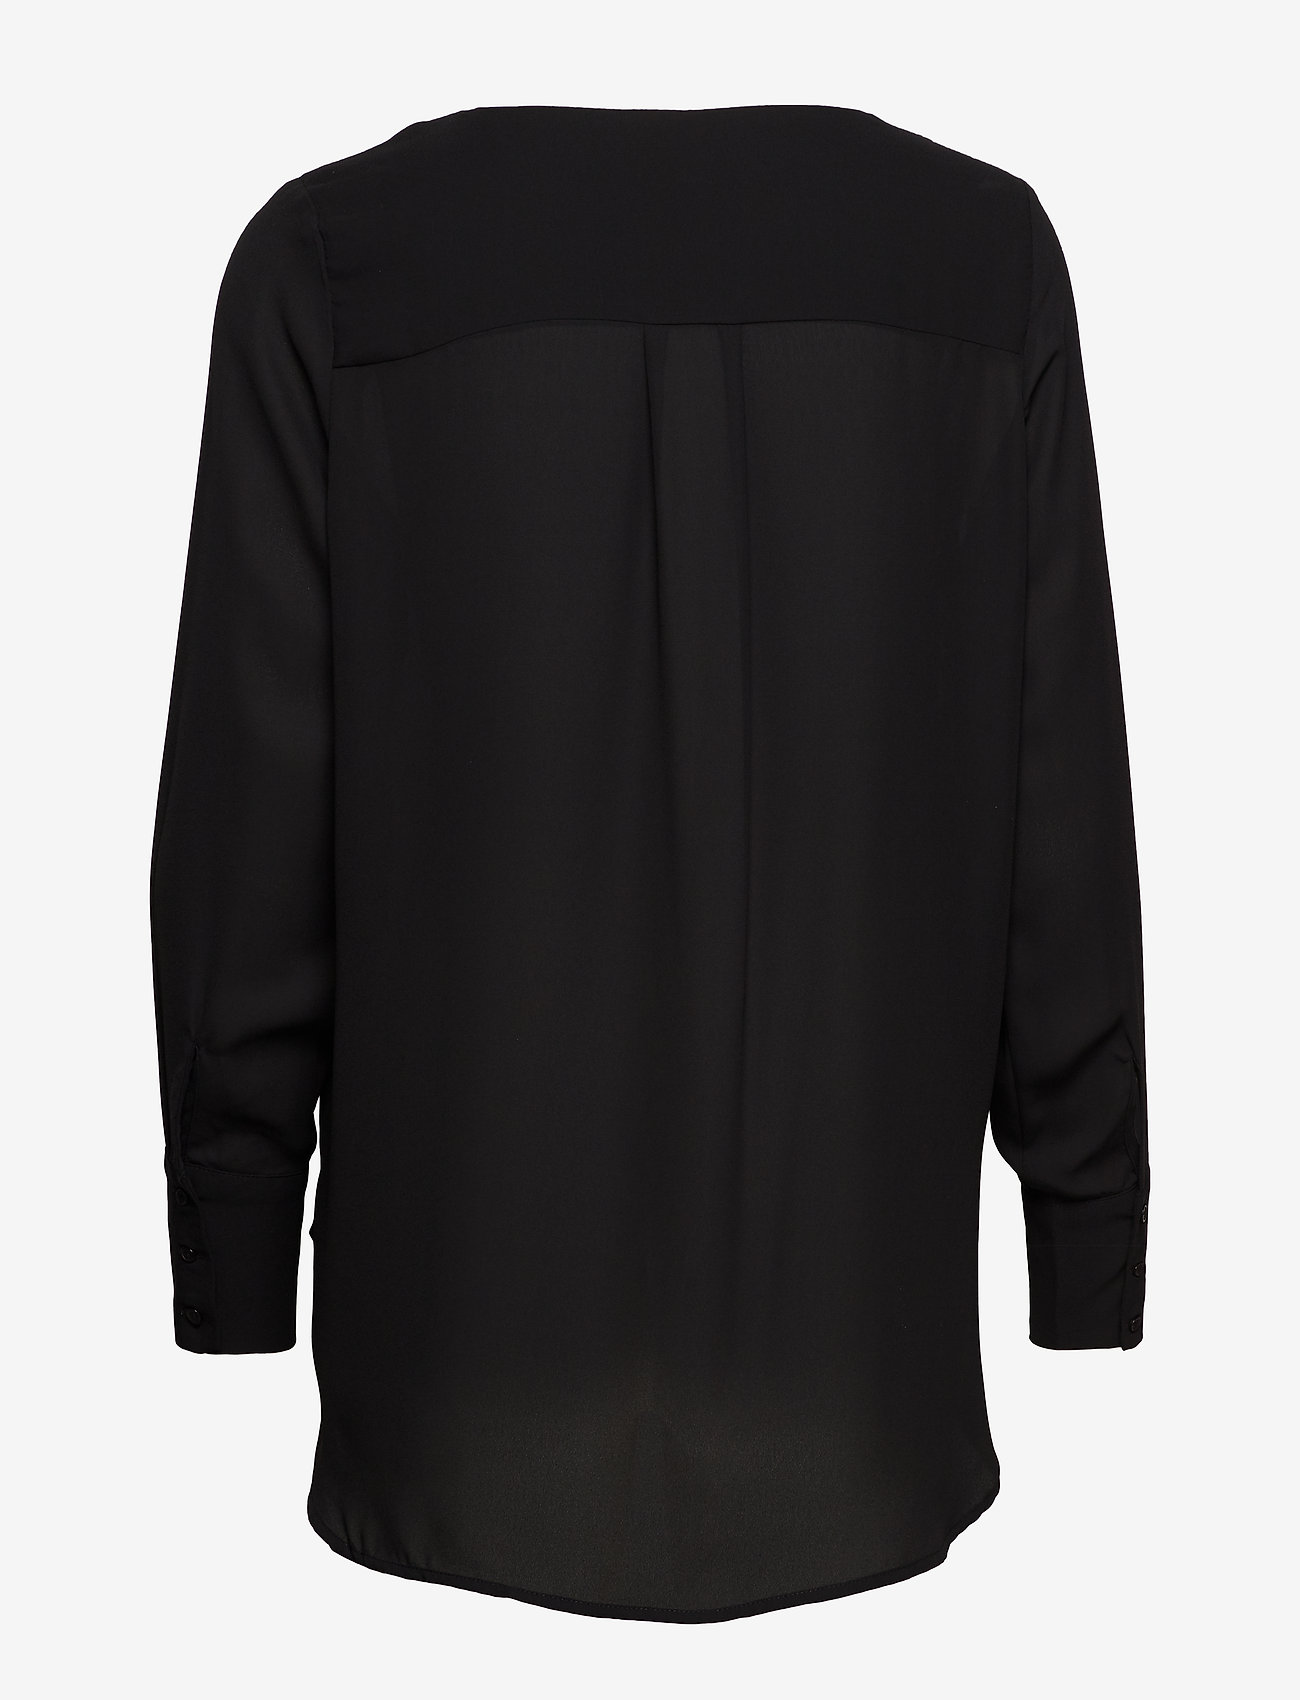 Selected Femme - SLFSTINA-DYNELLA LS SHIRT B NOOS - long sleeved blouses - black - 1